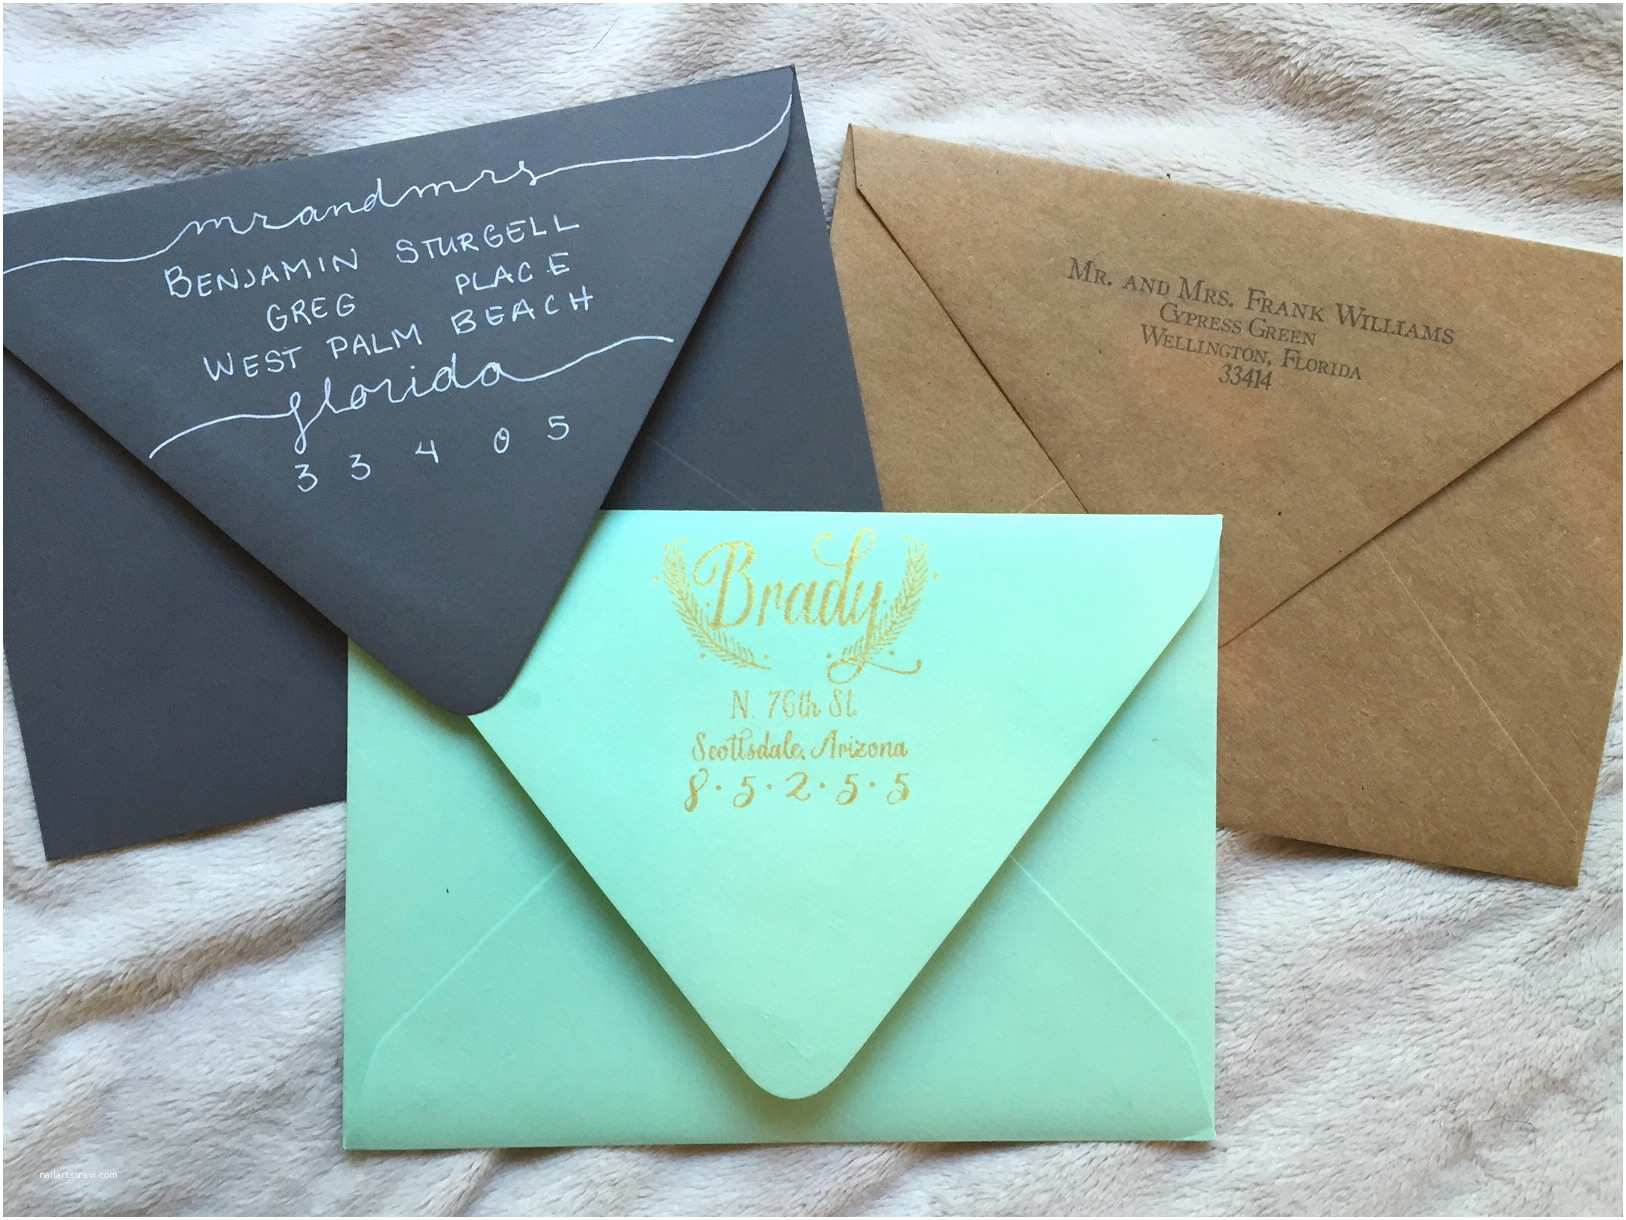 Wedding Invitation Return Address Etiquette Etiquette Rules Addressing Envelopes